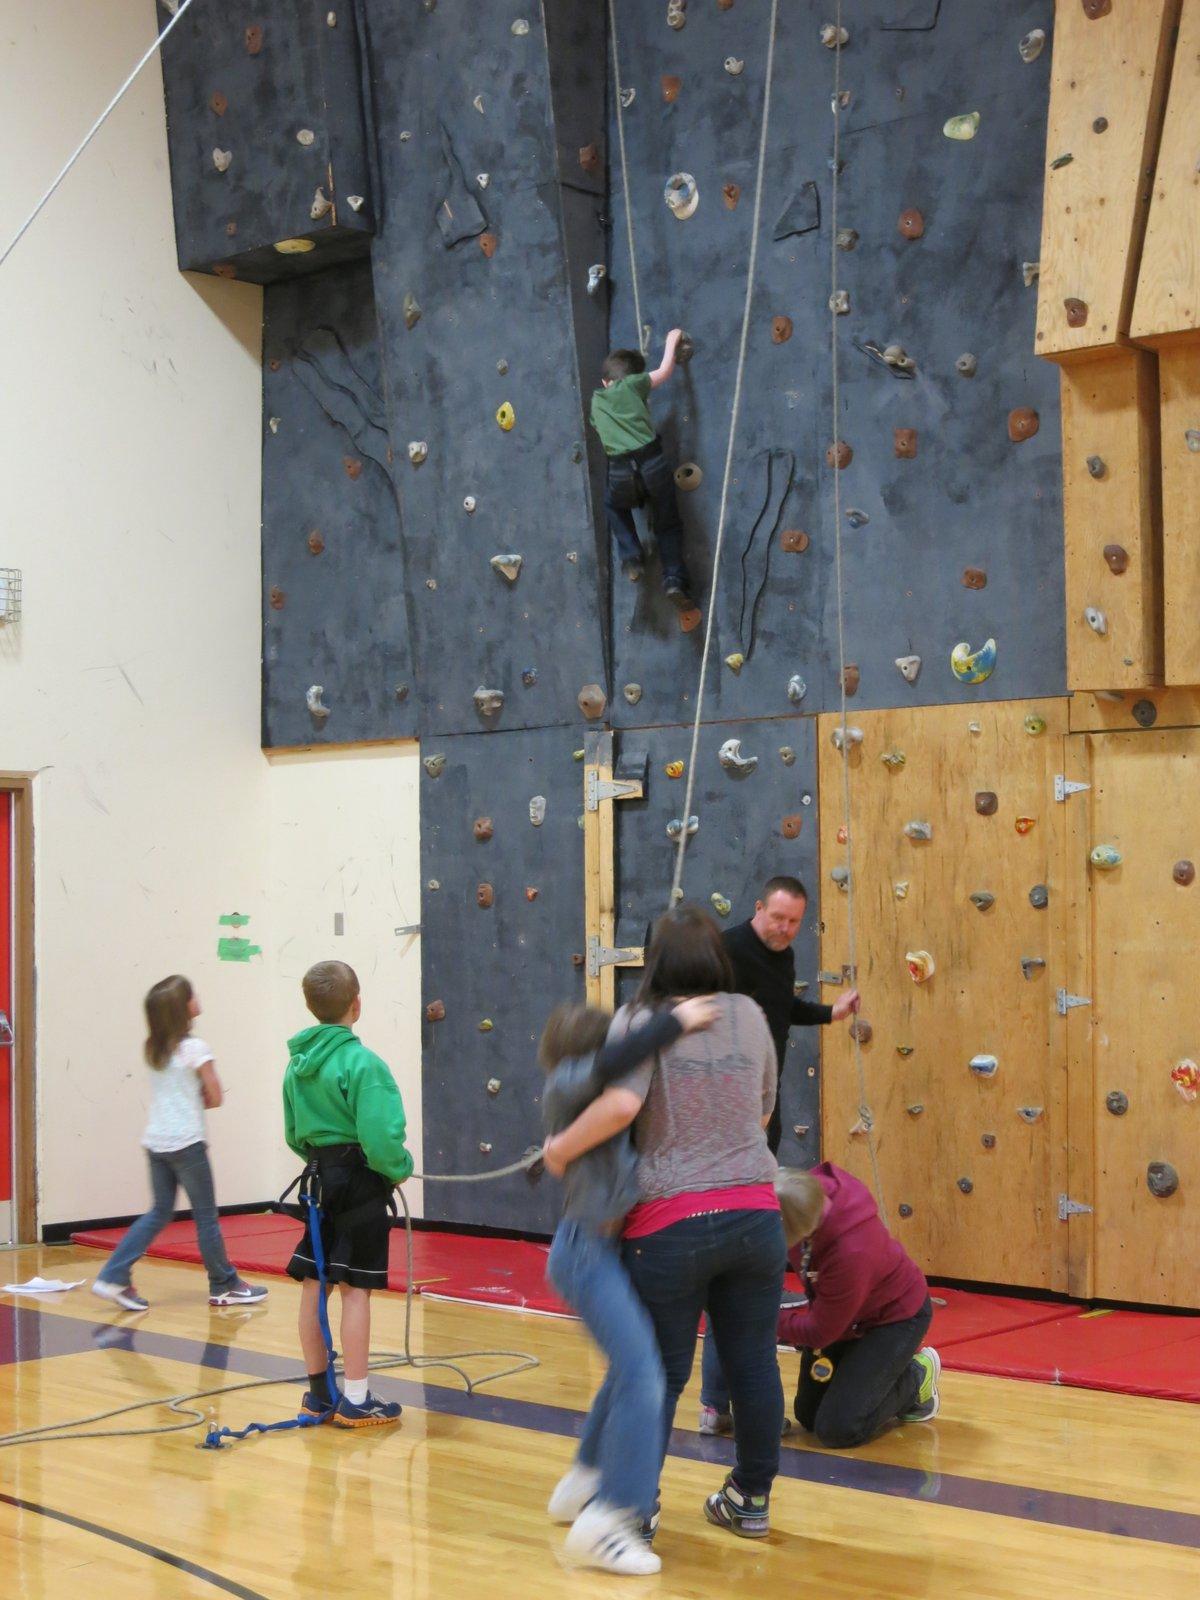 Despite their isolation, most of the rural schools are like their more urban counterparts, including having gyms with rock climbing walls.